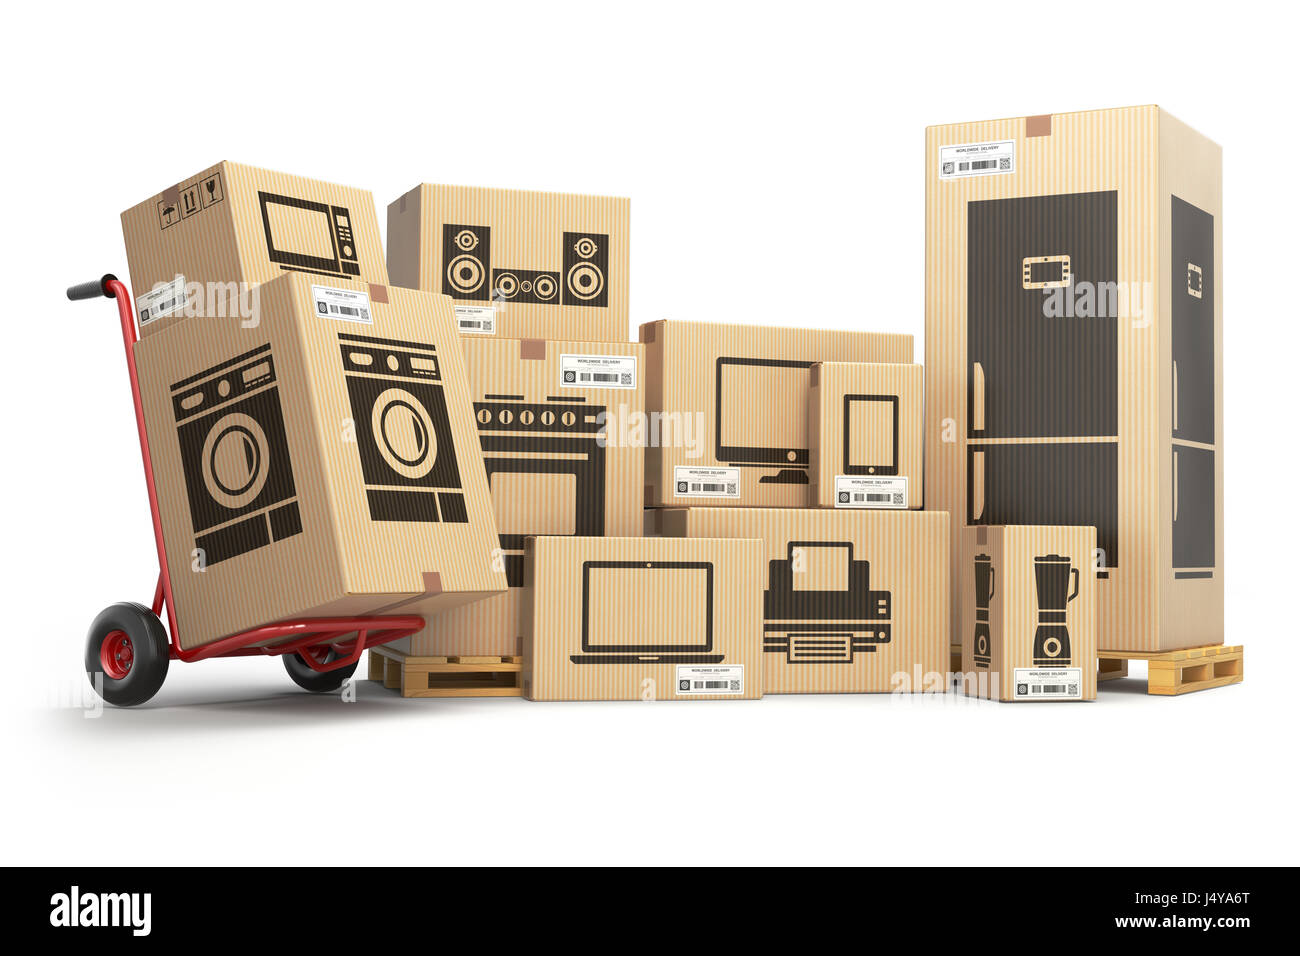 In Home Electronics Household Kitchen Appliances And Home Electronics In Carboard